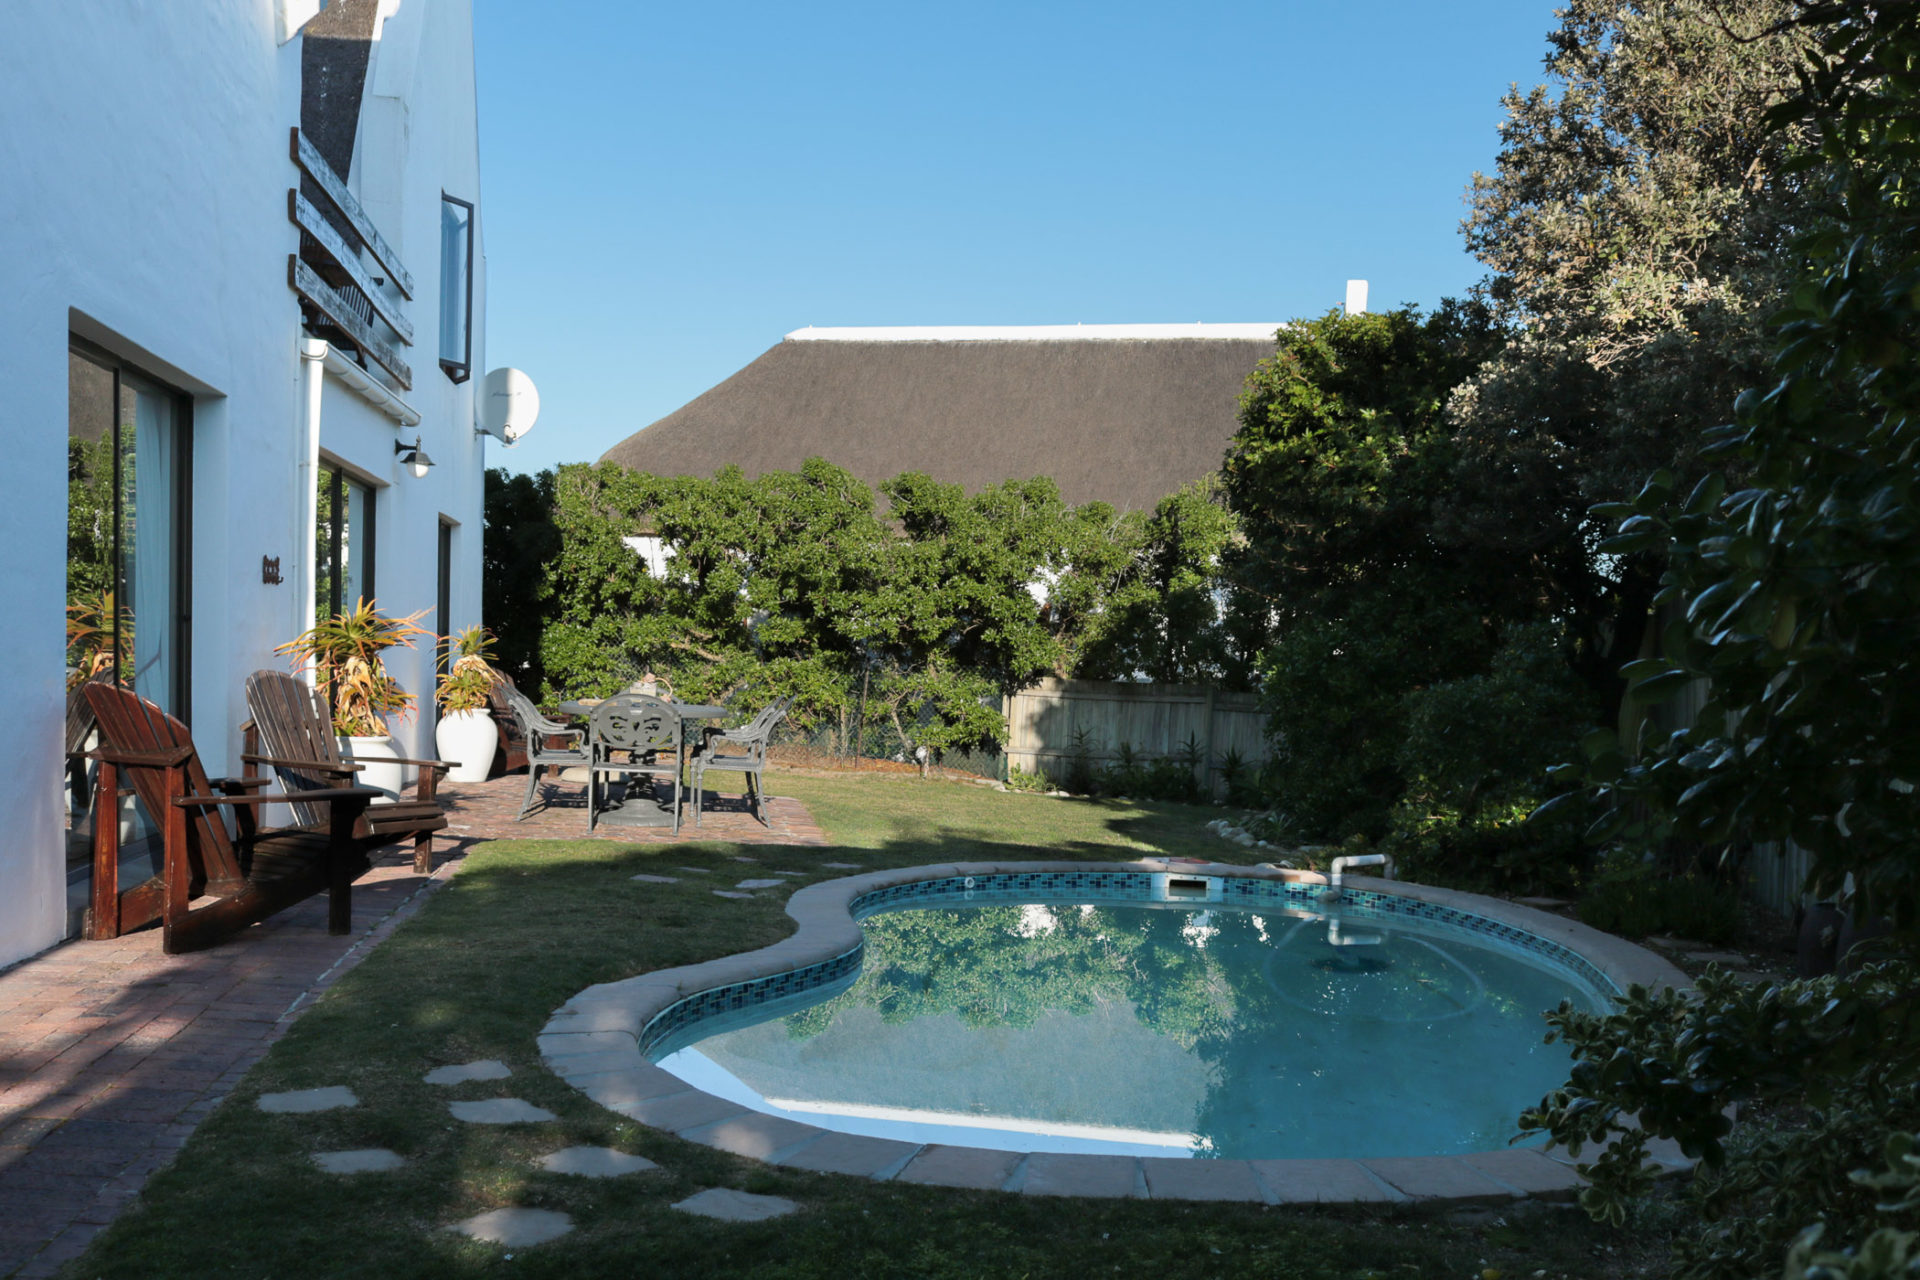 Pool and garden of guesthouse